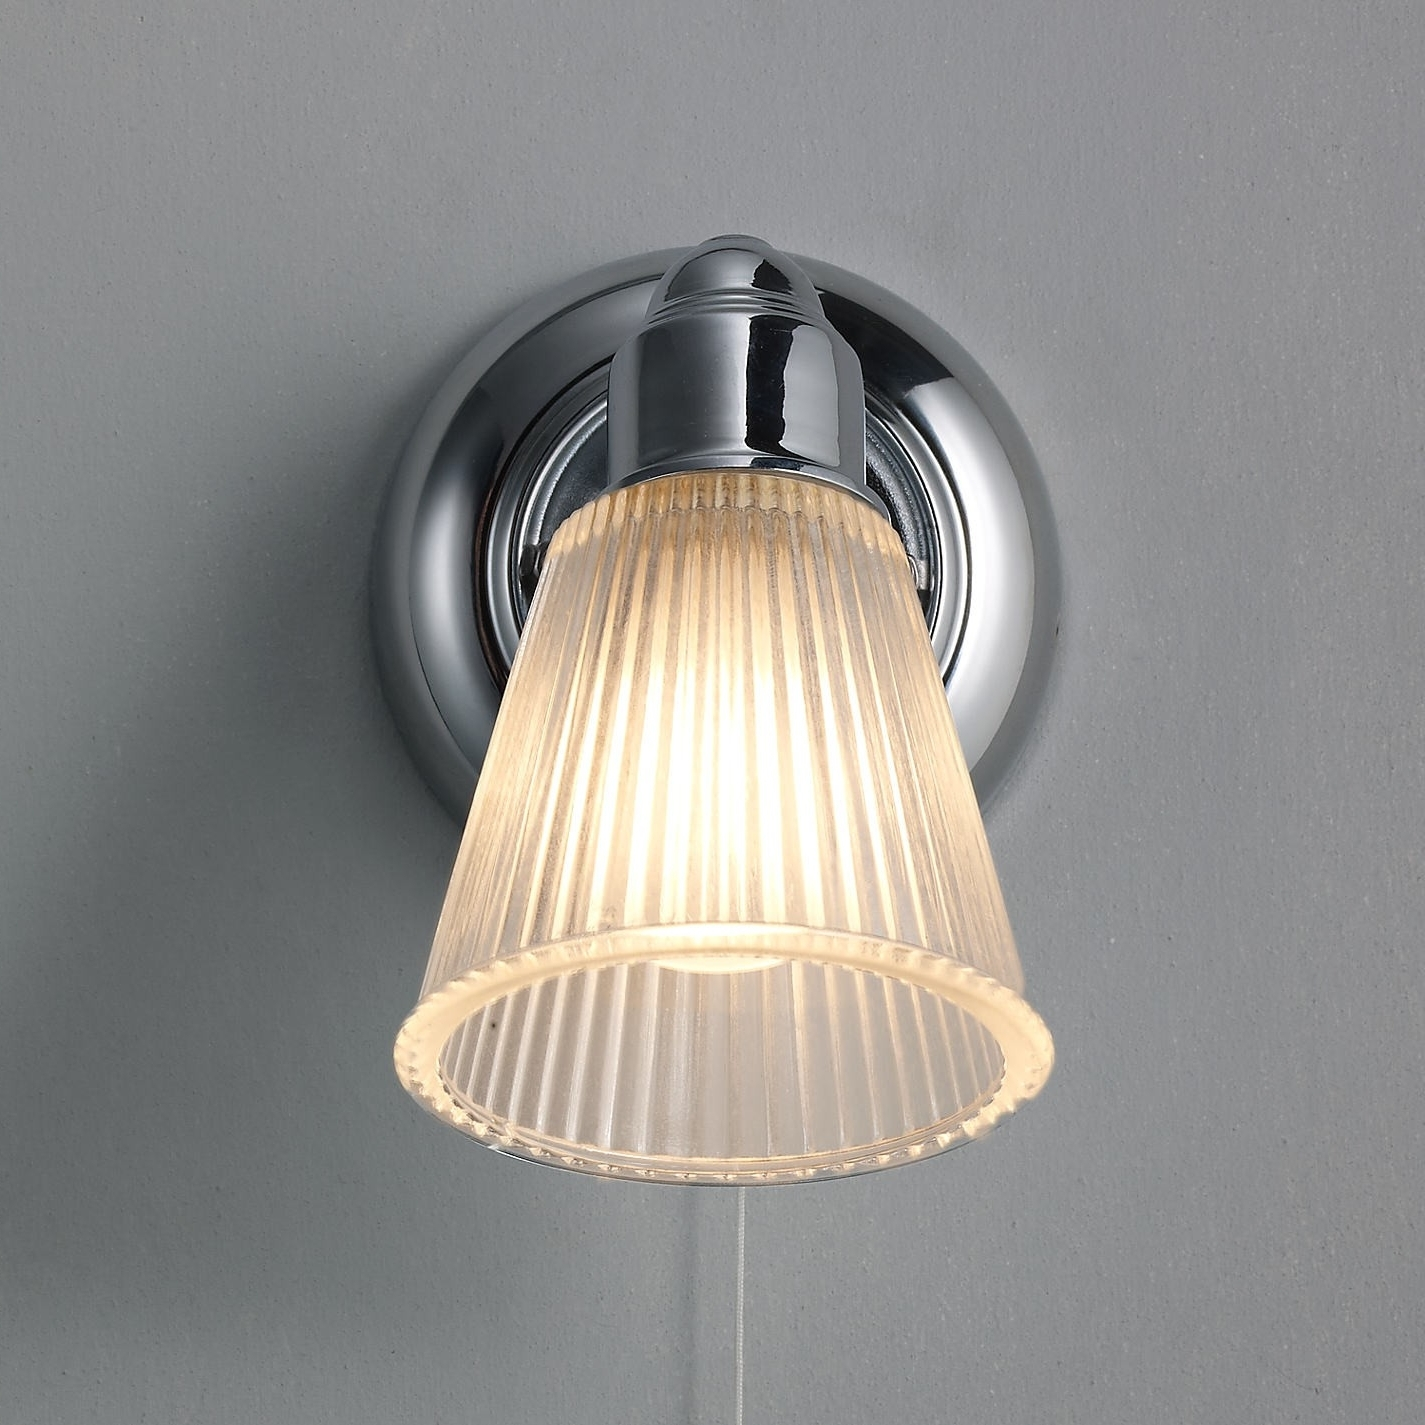 Trendy Awesome Bathroom Wall Lights John Lewis – Dkbzaweb Pertaining To Outdoor Wall Lights At John Lewis (View 18 of 20)